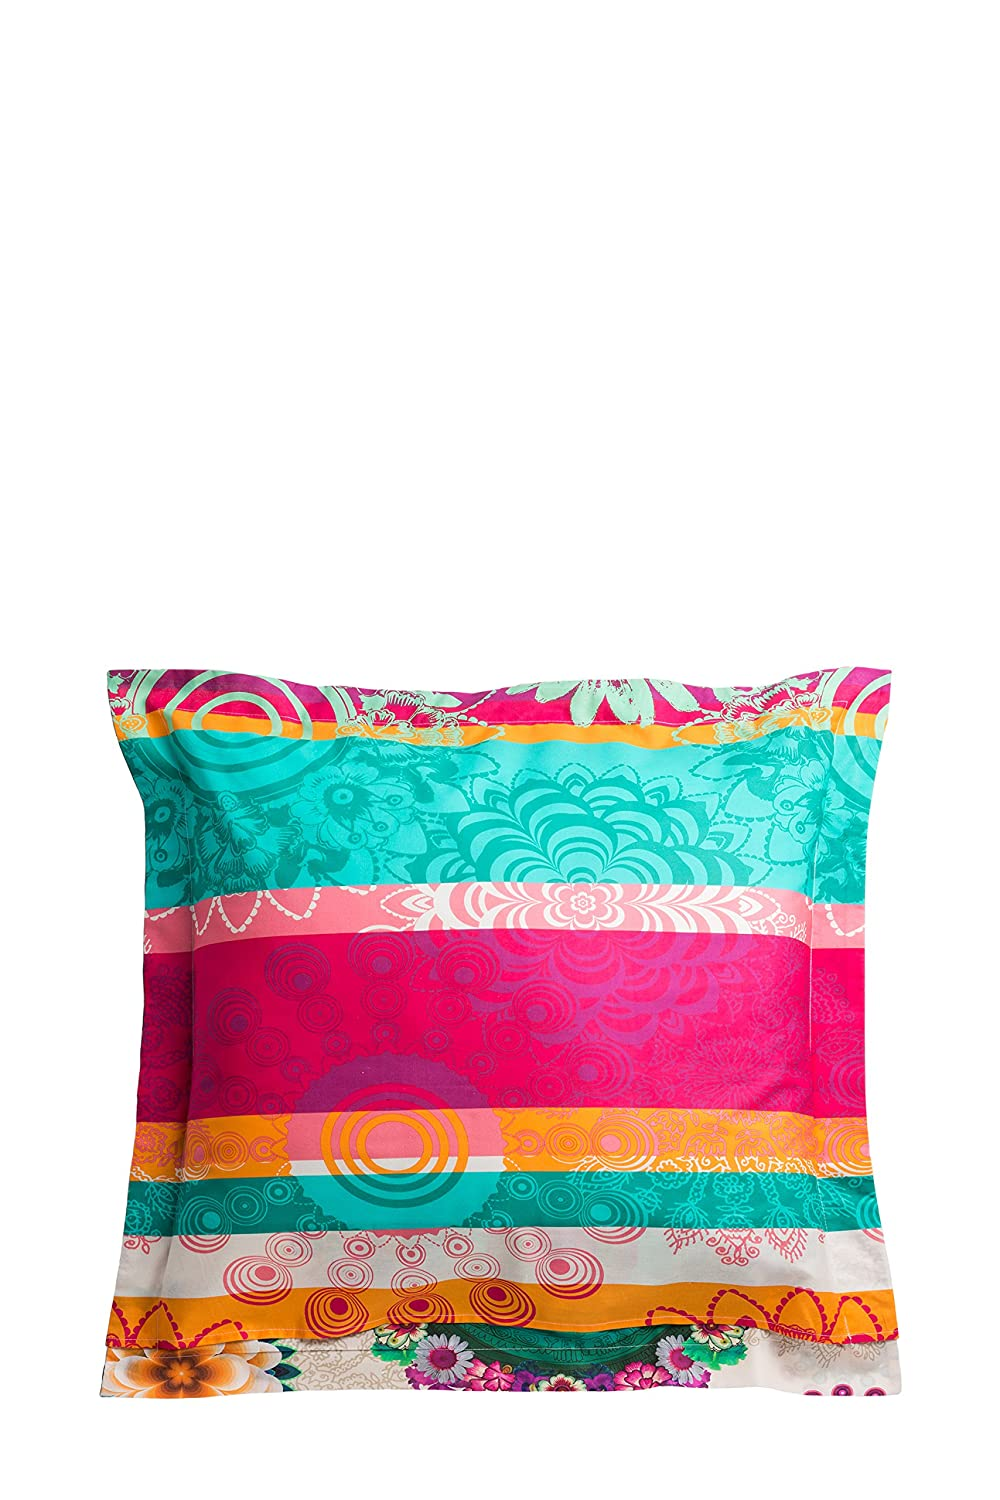 Amazon.com: Desigual.-Funda de almohada decorativos Happy ...